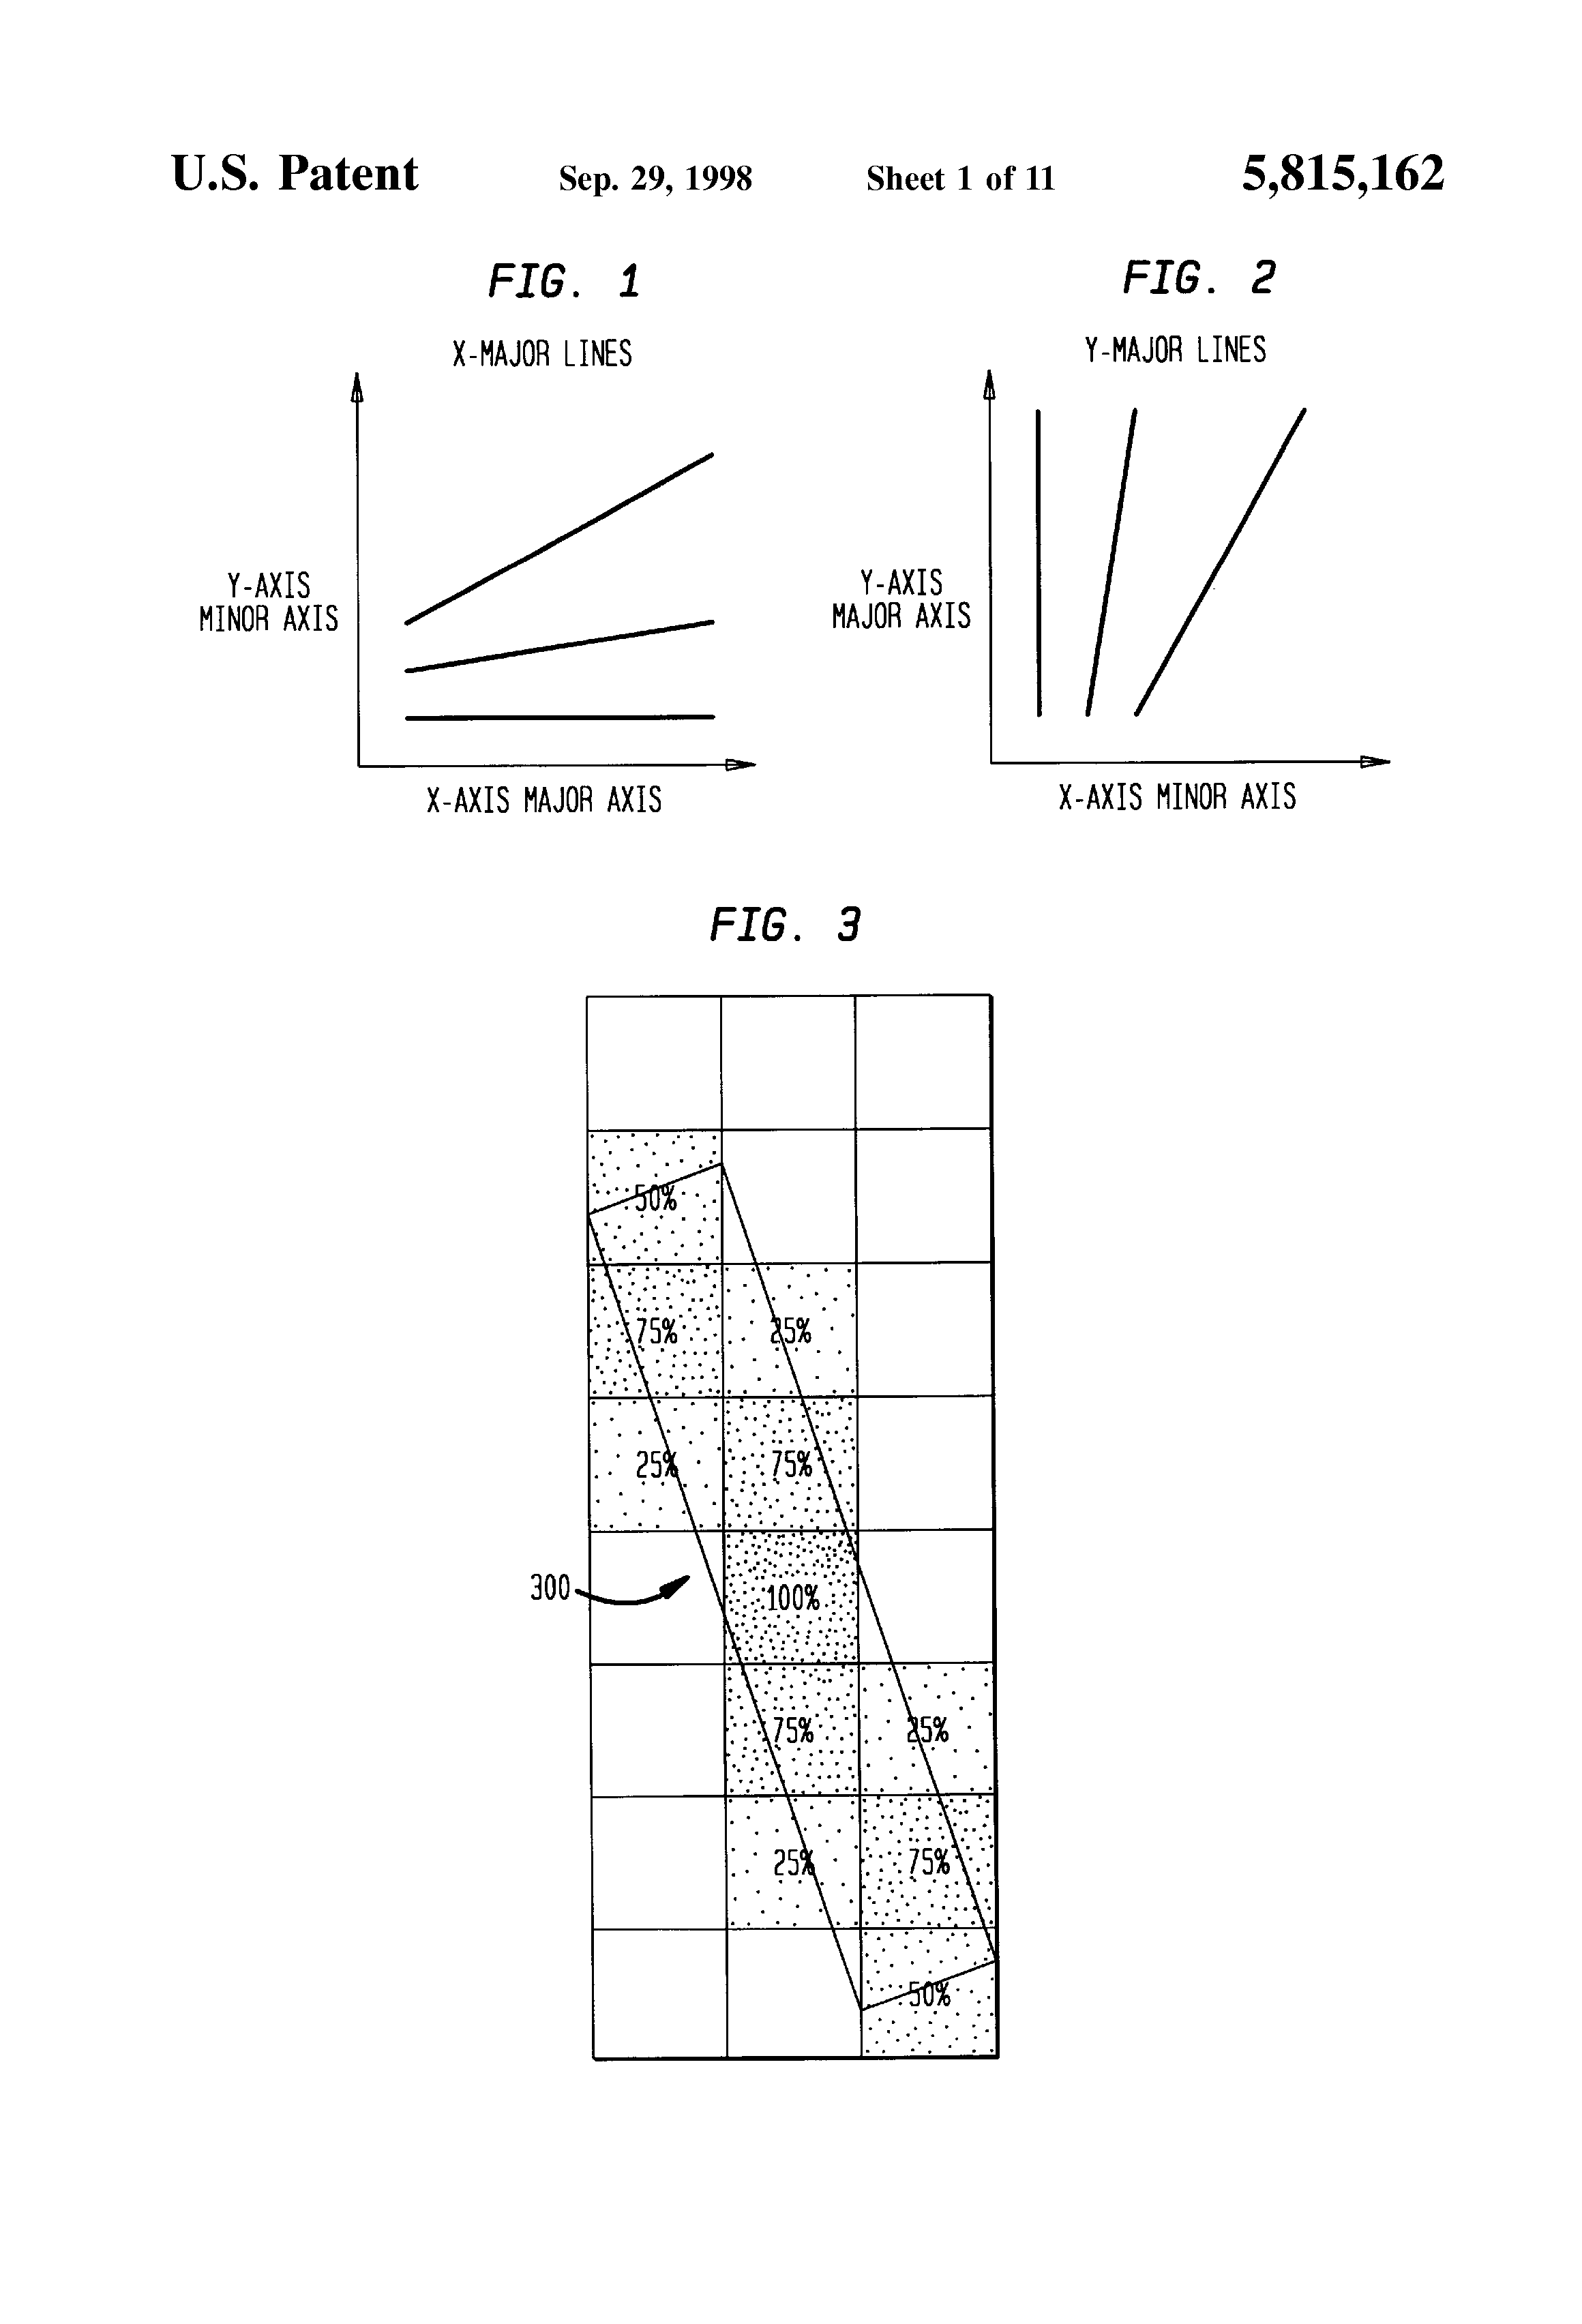 Bresenham Line Drawing Algorithm Negative Slope : Patent us system and method of drawing anti